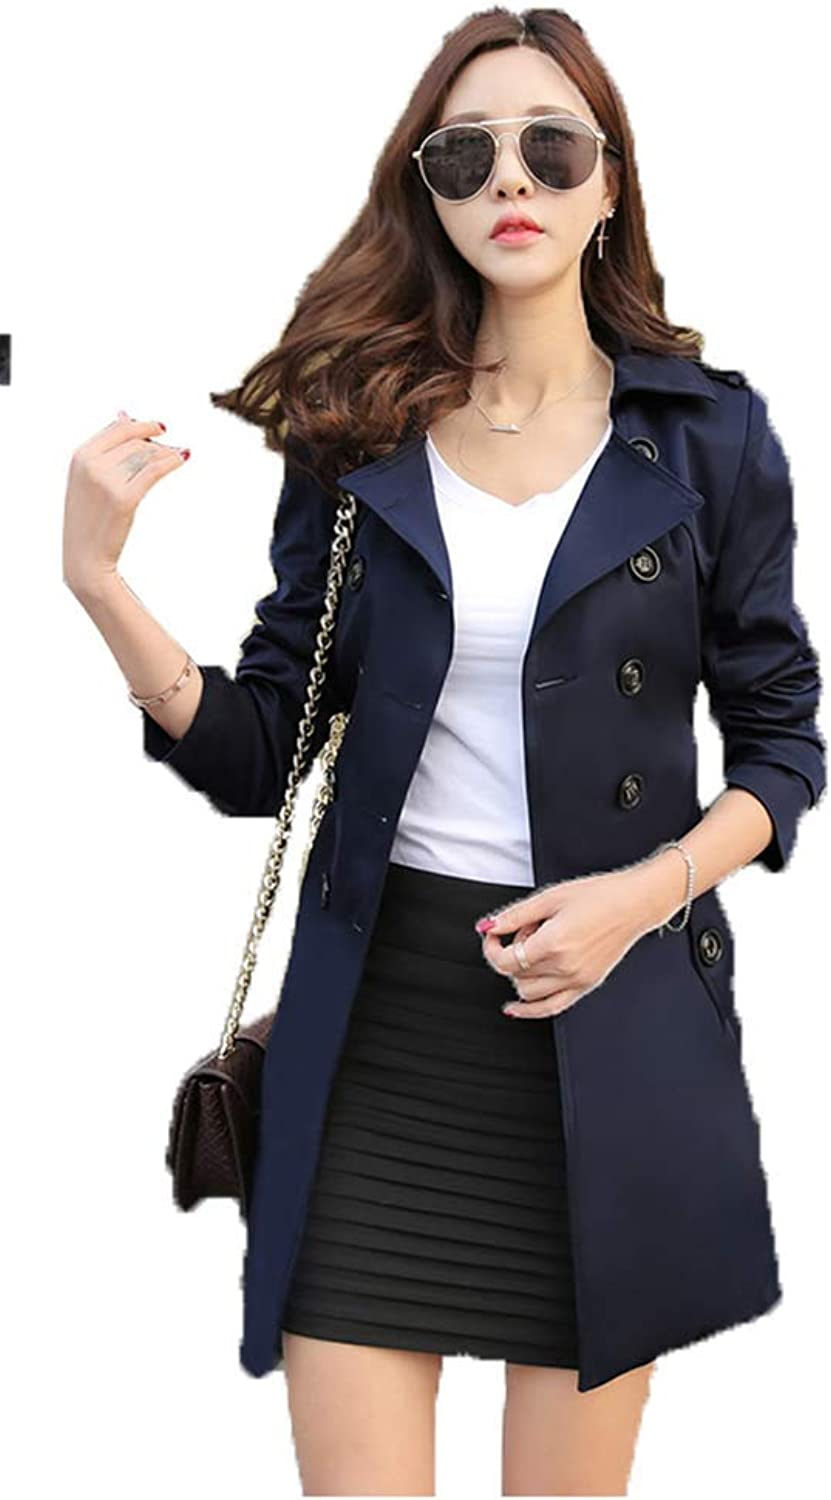 Obosoyo Women's Double Breasted Trench Coat Chelsea Tailoring Overcoat with Belt